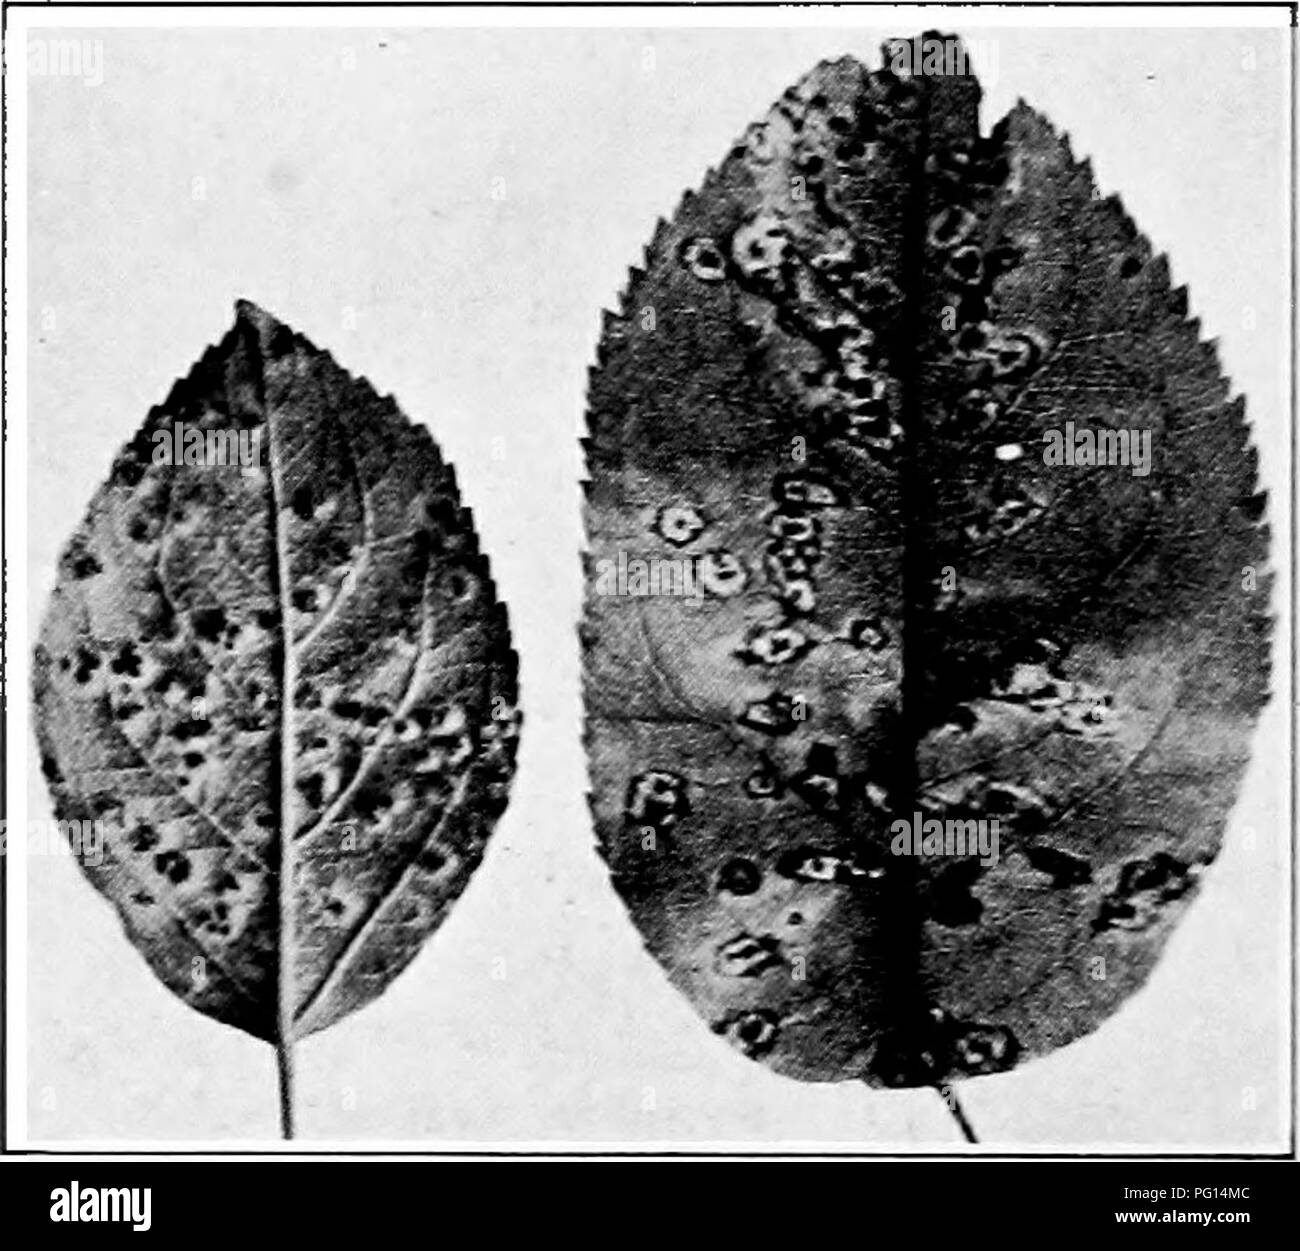 . Manual of tree diseases . Trees. 194 MAX UAL OF TREE DISEASES jelly-like and the individual spores germinate, each producing several secondary spores (basidiospores) which are shot off into the air. These spores are carried away by the wind and may find lodgment on the leaves, twigs or fruit of the proper alternate host. Under favorable conditions of moisture, the basidiospores germinate and the tissue of the pomaceous host is penetrated and a new growth of mycelium started. The area of tissue invaded is limited to a small spot which becomes somewhat swollen and light yellow in color (Fig. 2 - Stock Image